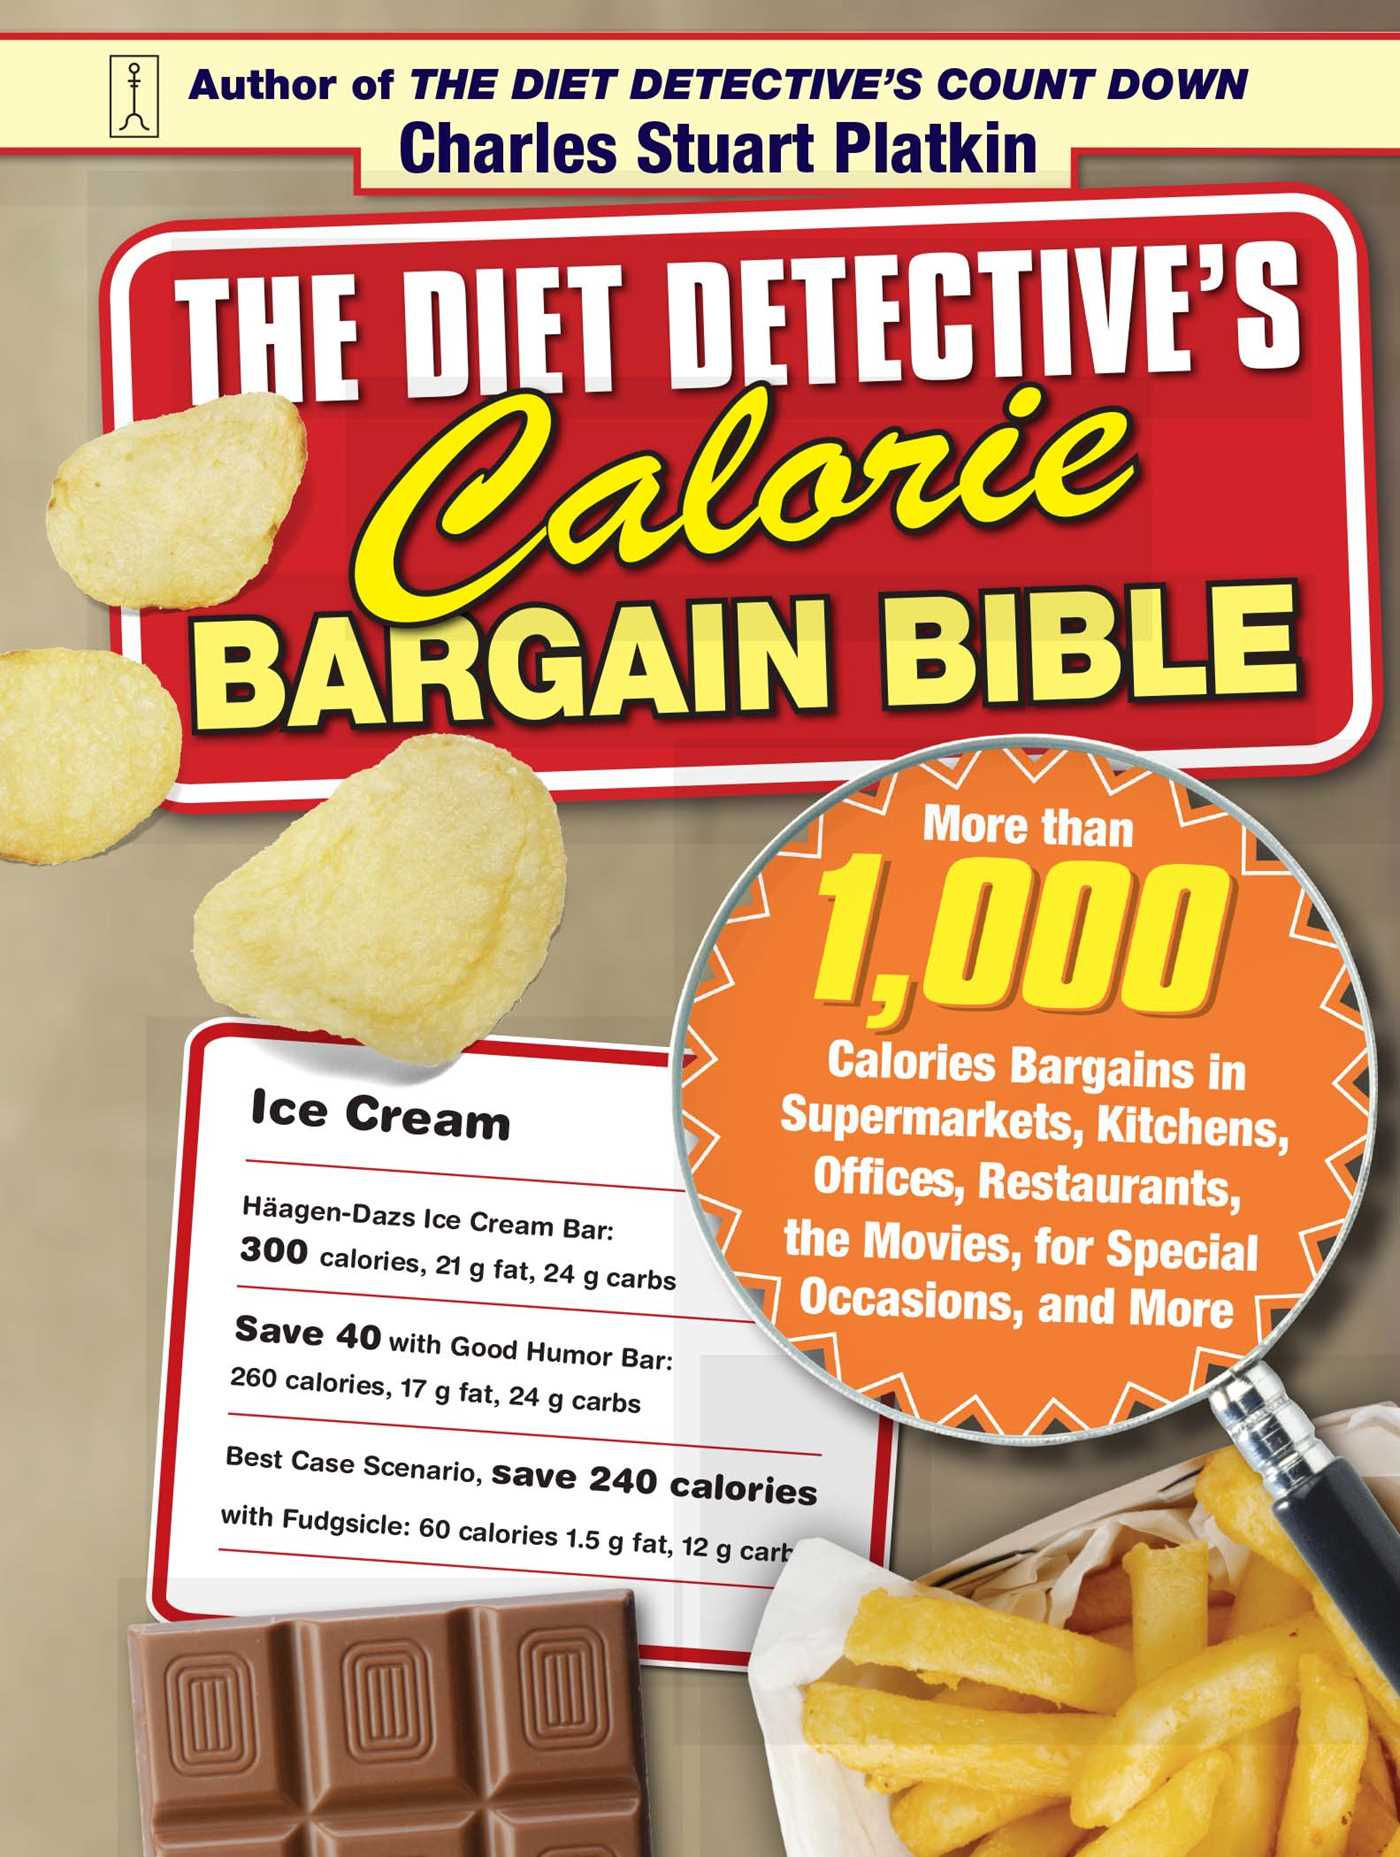 The diet detectives calorie bargain bible 9781416551225 hr